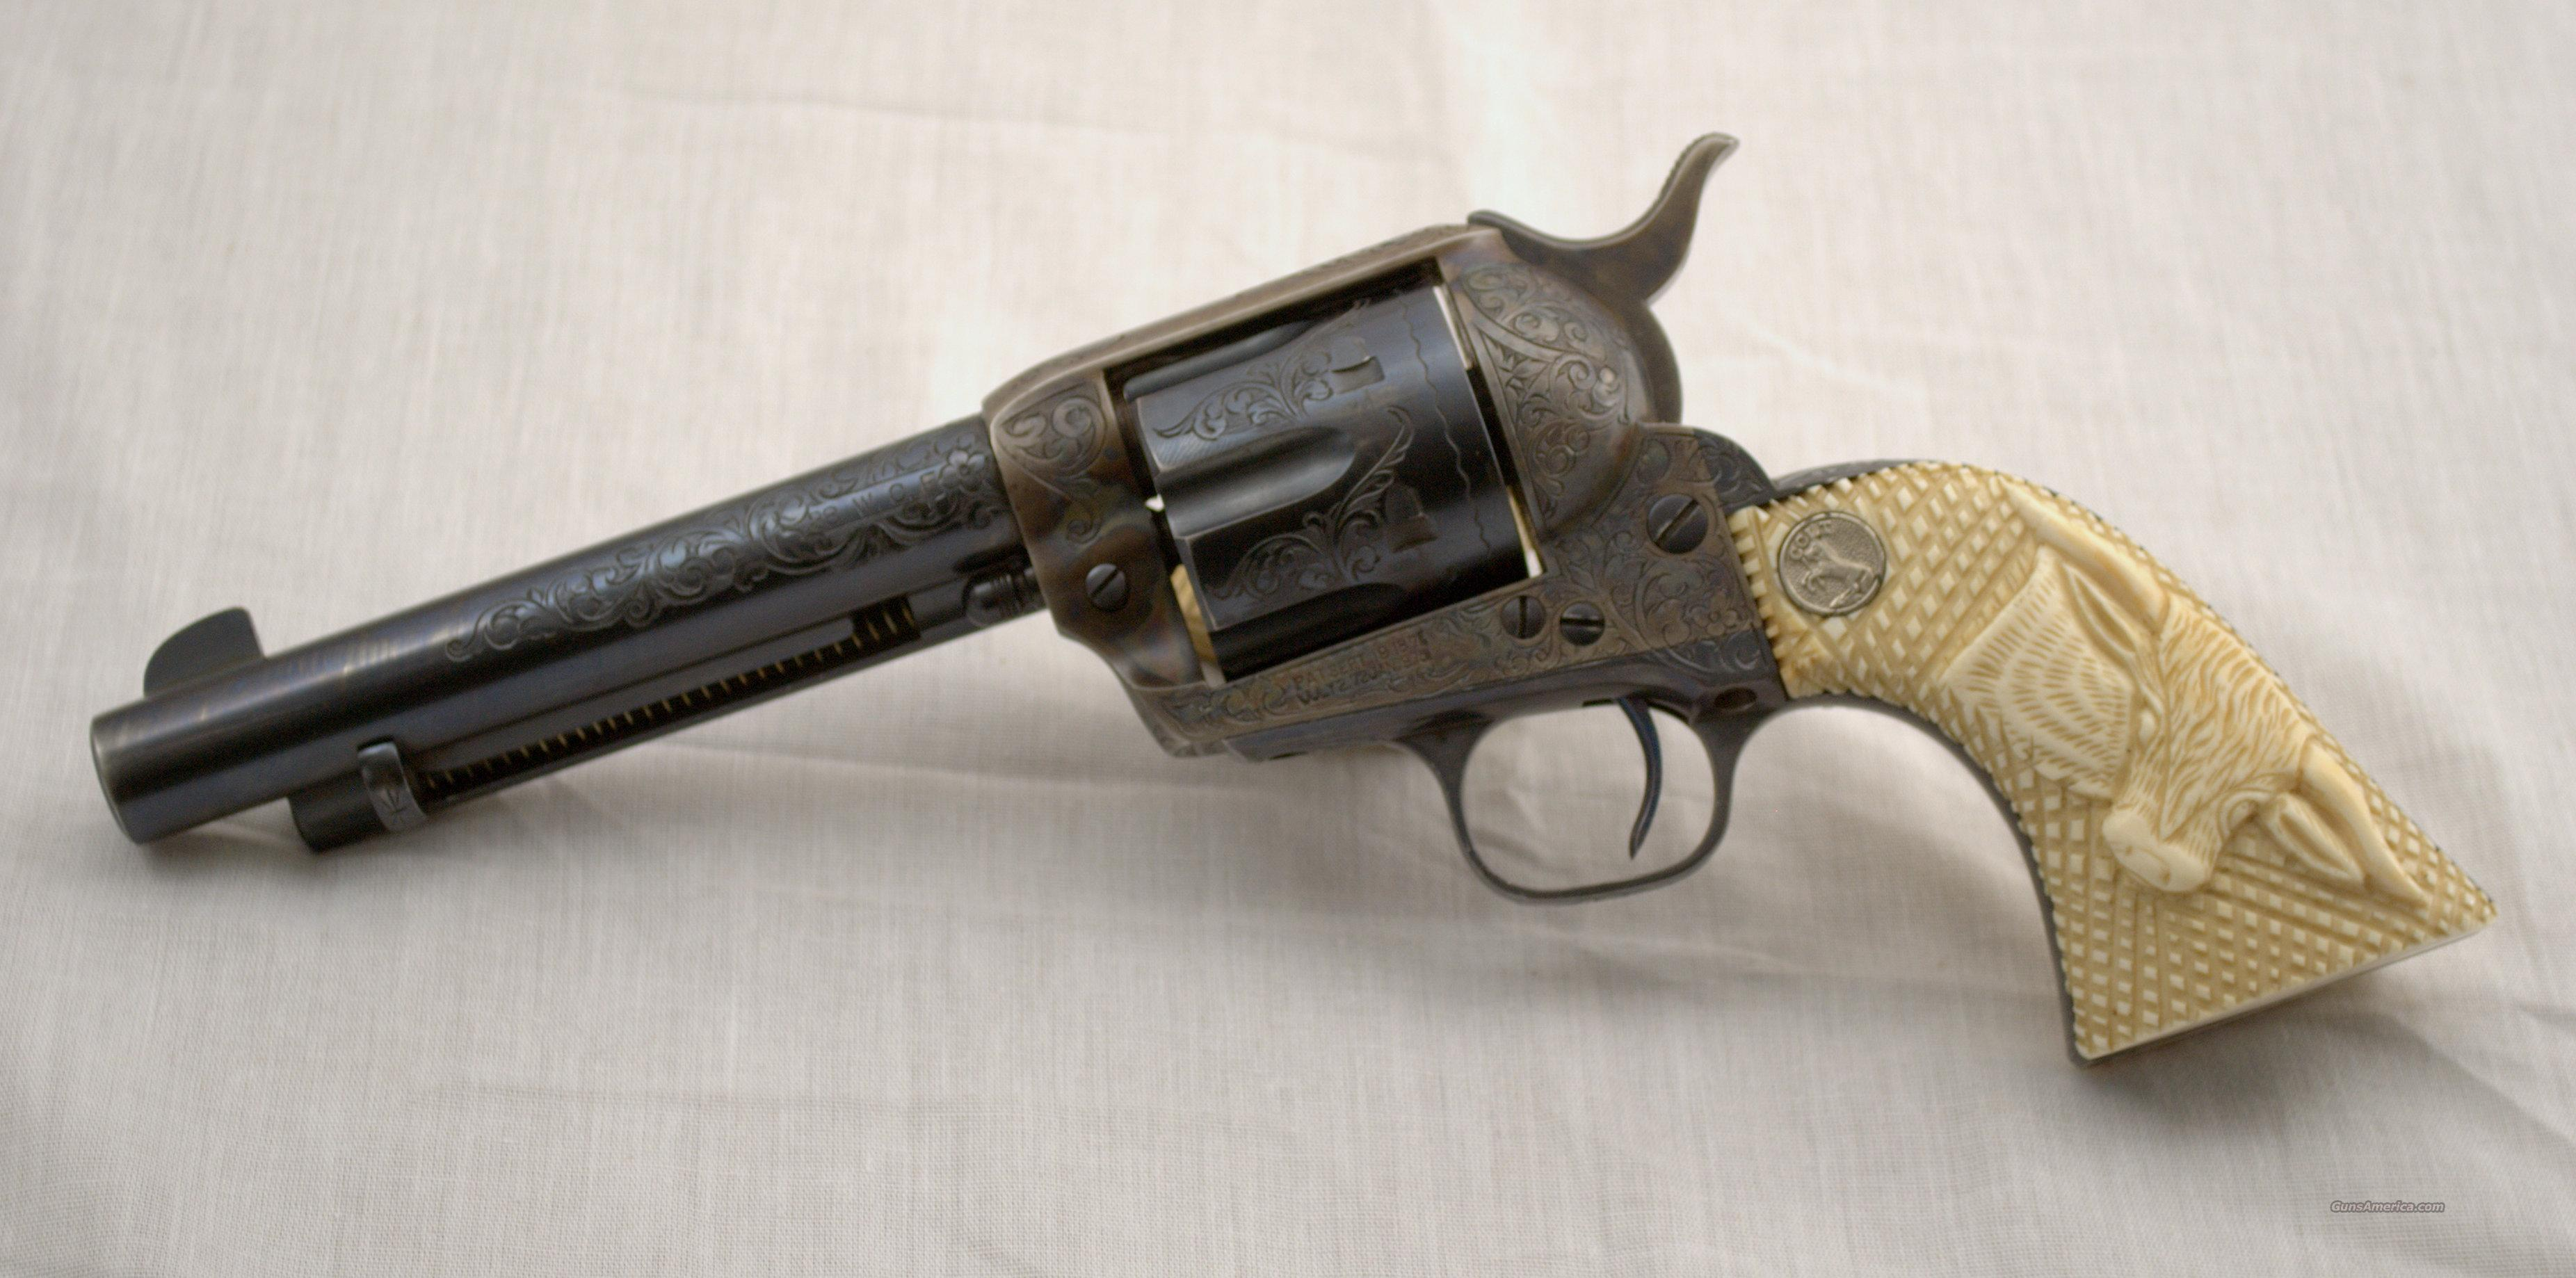 COLT SINGLE ACTION ARMY FACTORY ENGRAVED IVORY GRIP 38/40 CALIBER  Guns > Pistols > Colt Single Action Revolvers - 1st Gen.